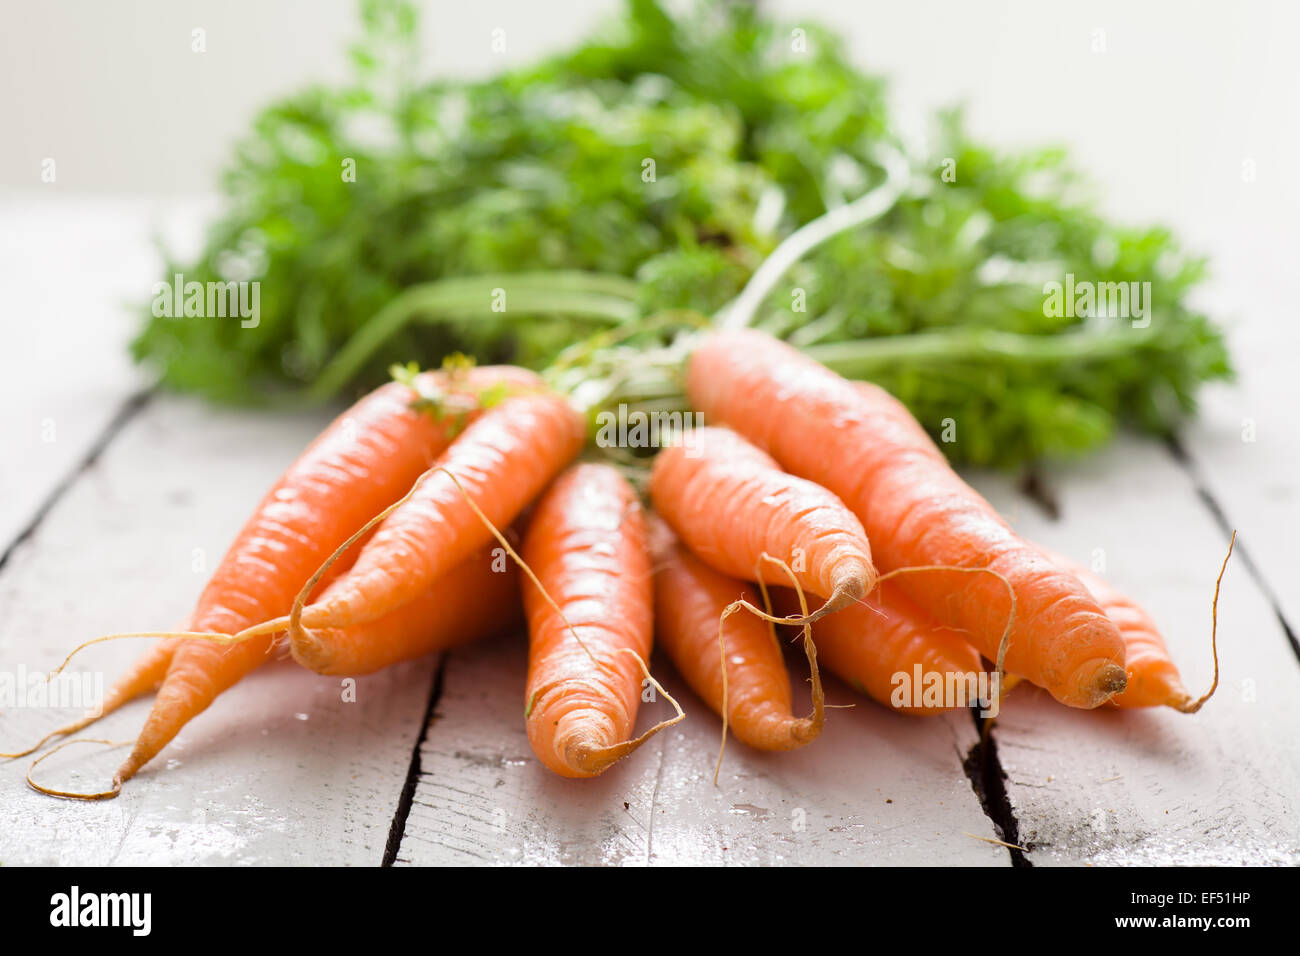 Bunch of Tied Carrots on White Wood - Stock Image